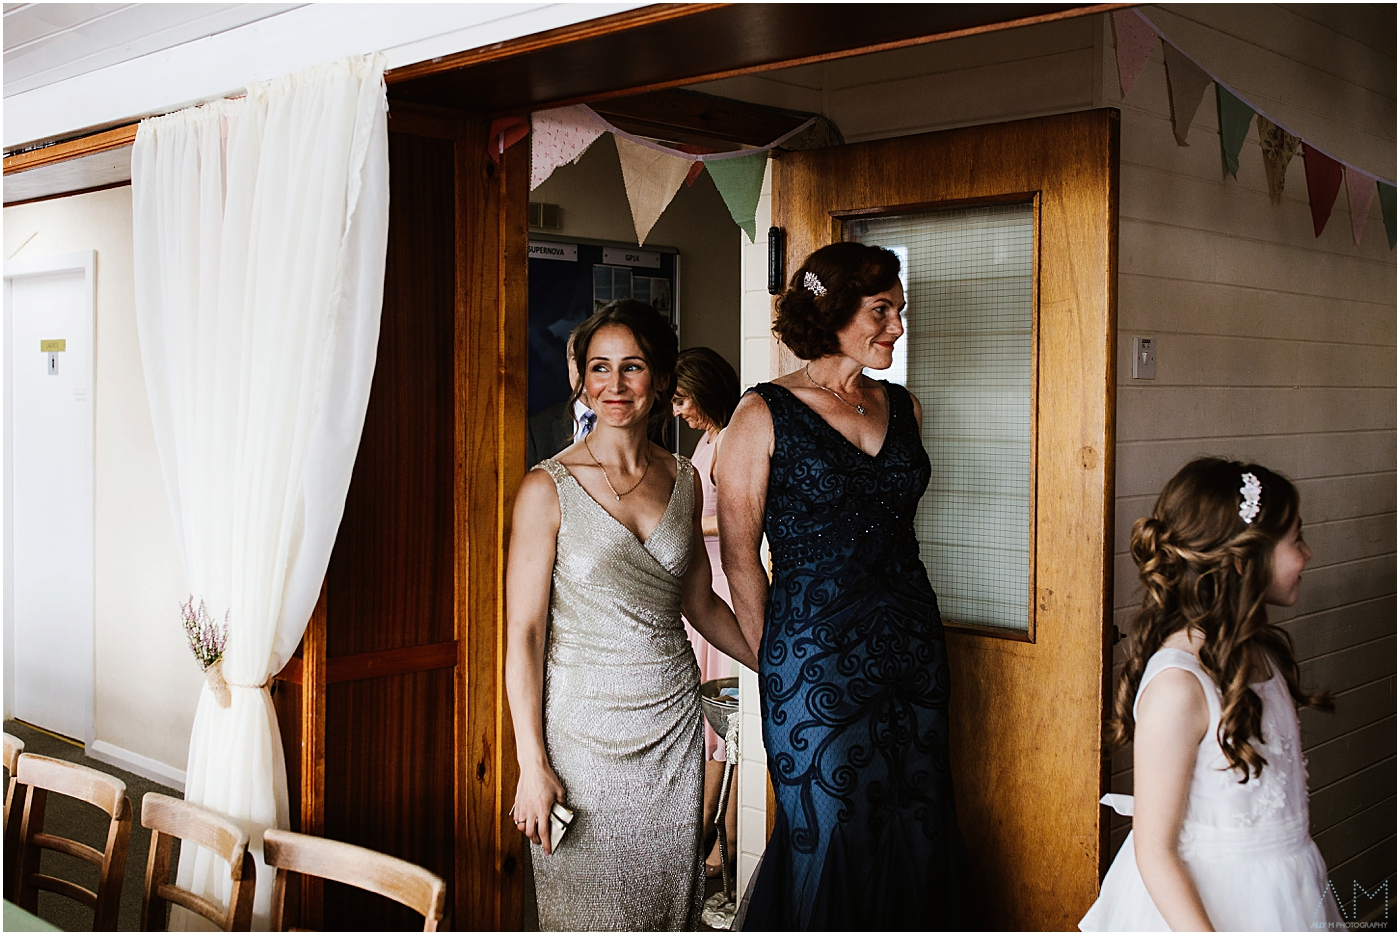 The two brides enter the reception room at Belmont sailing club